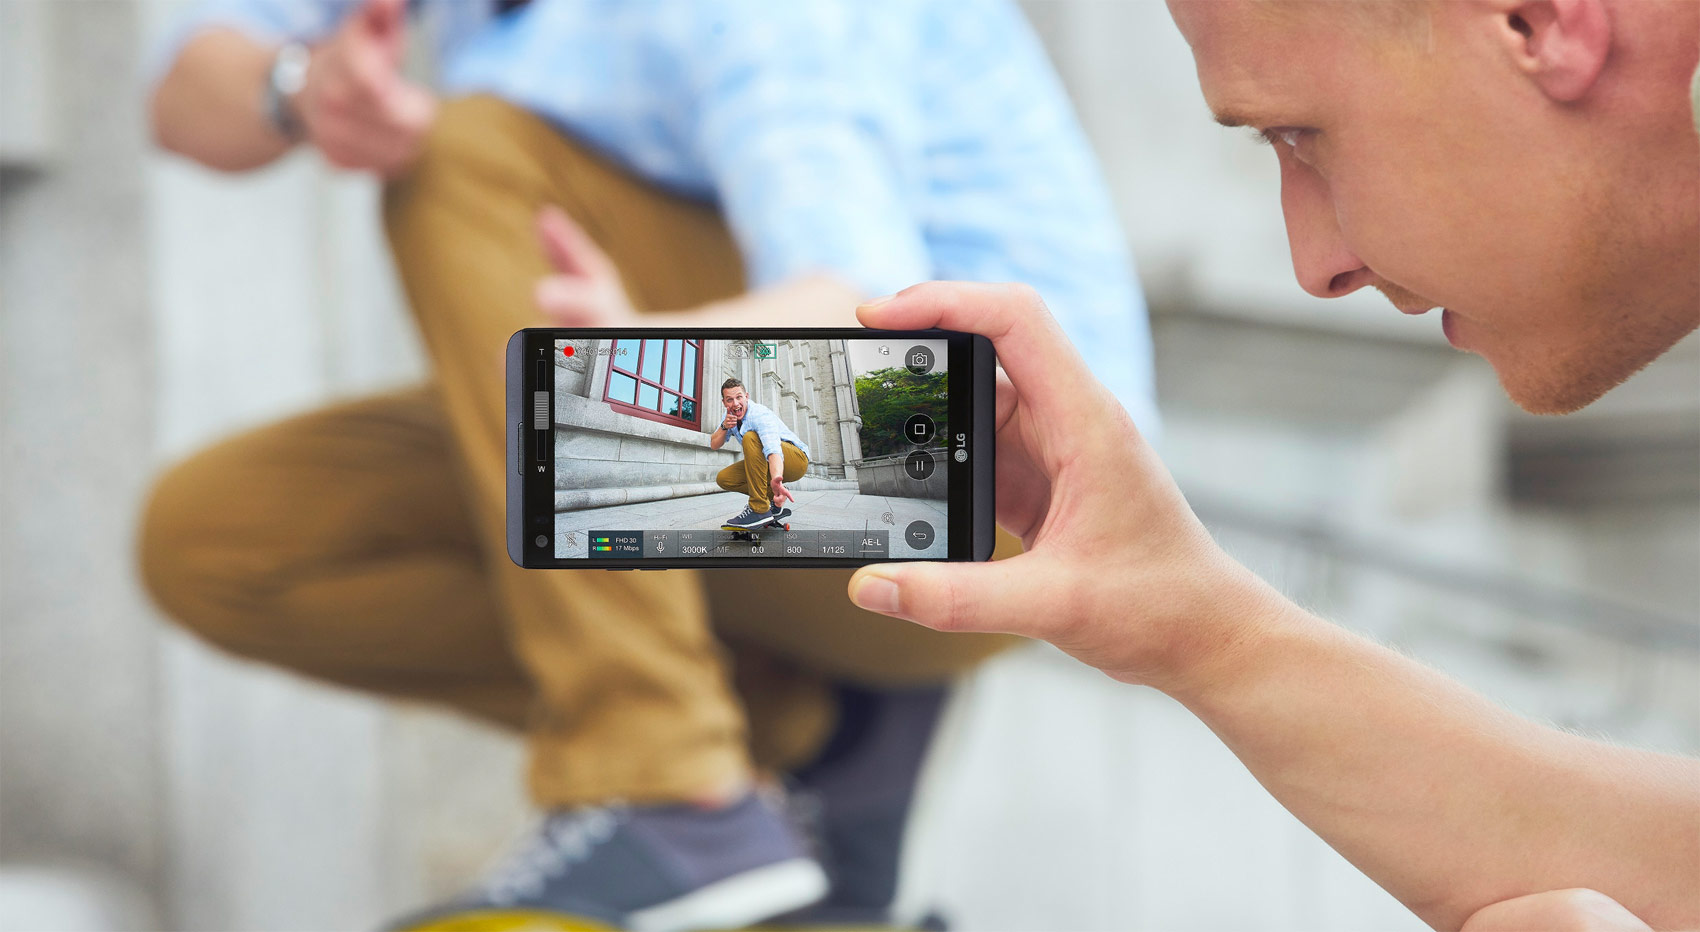 LG V20 Smartphone – The Most Multimedia Capable Phone In The Market